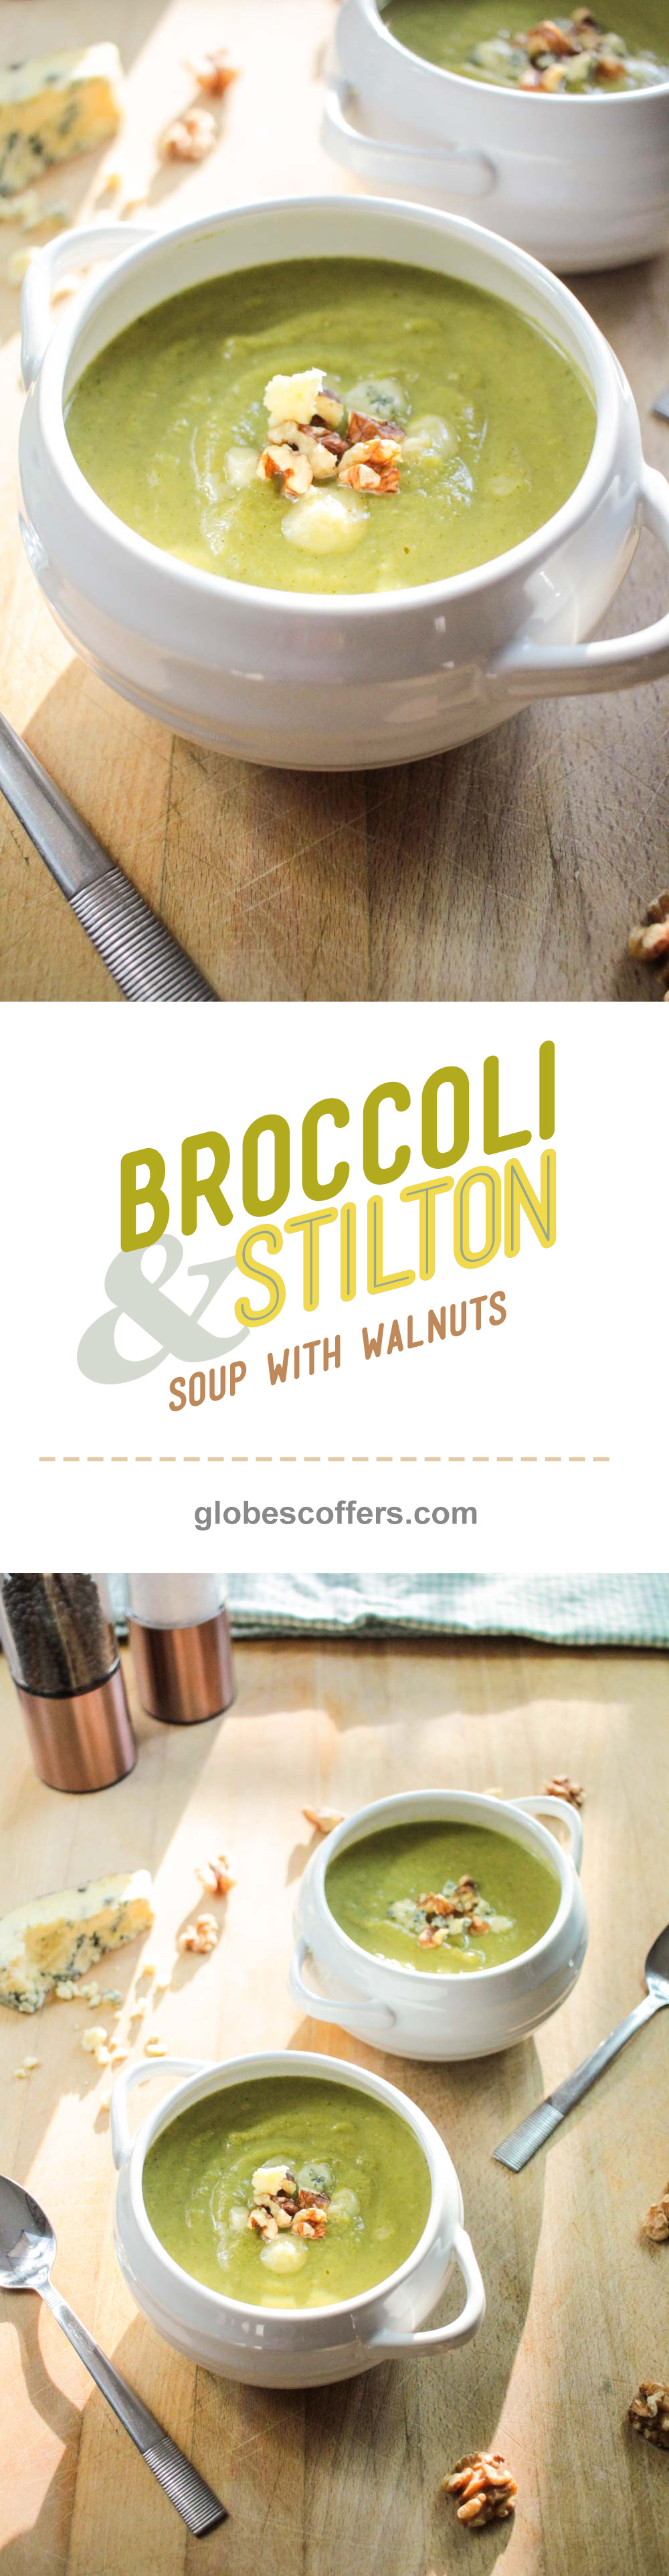 Broccoli-and-Stilton-Soup-with-Walnuts---Pinterest